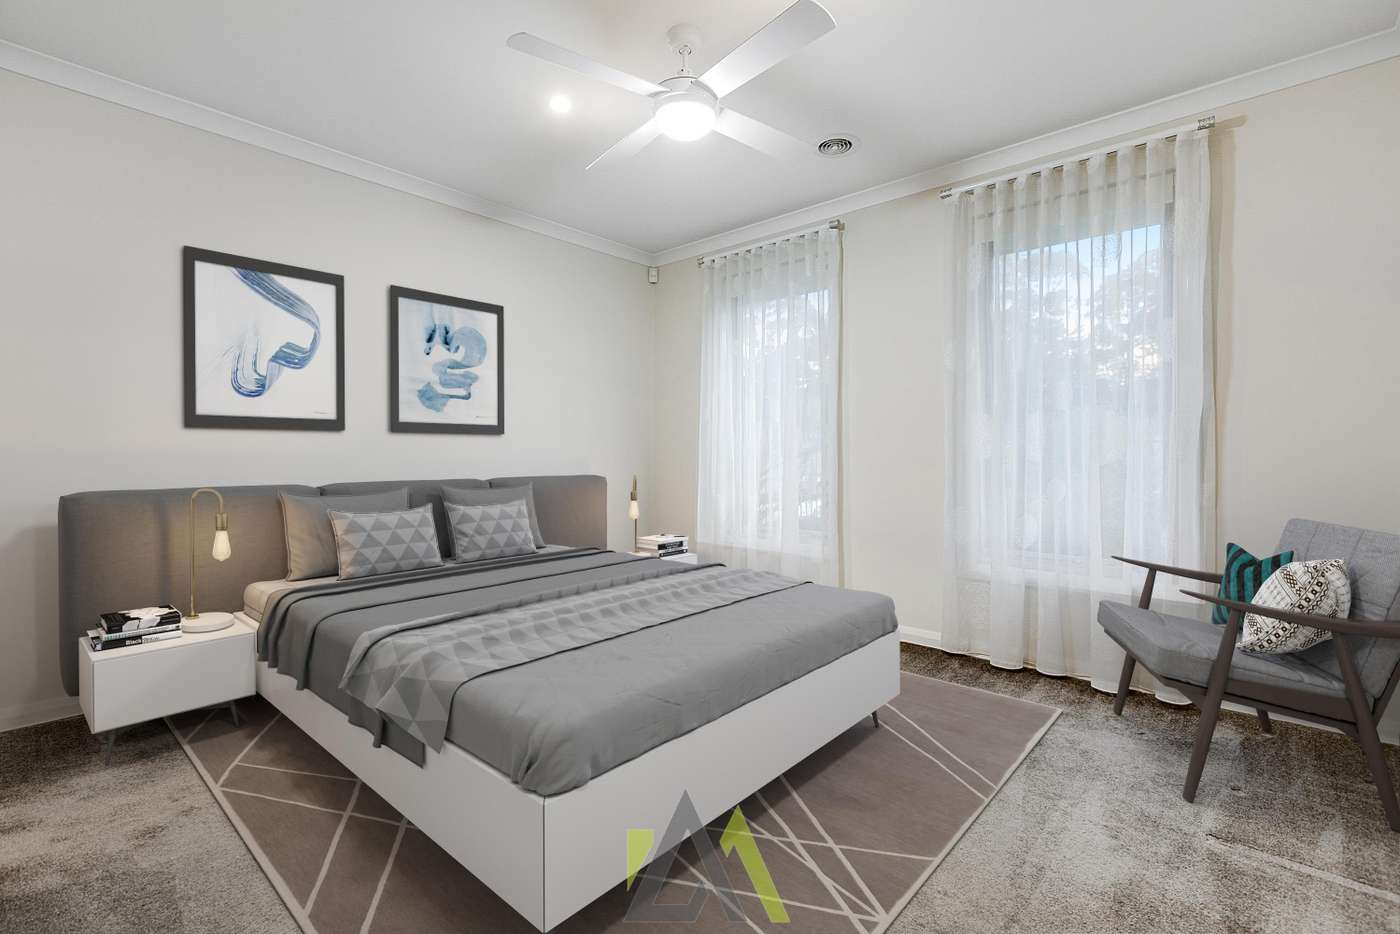 Sixth view of Homely unit listing, 1/67 Cranbourne-Frankston Road, Langwarrin VIC 3910